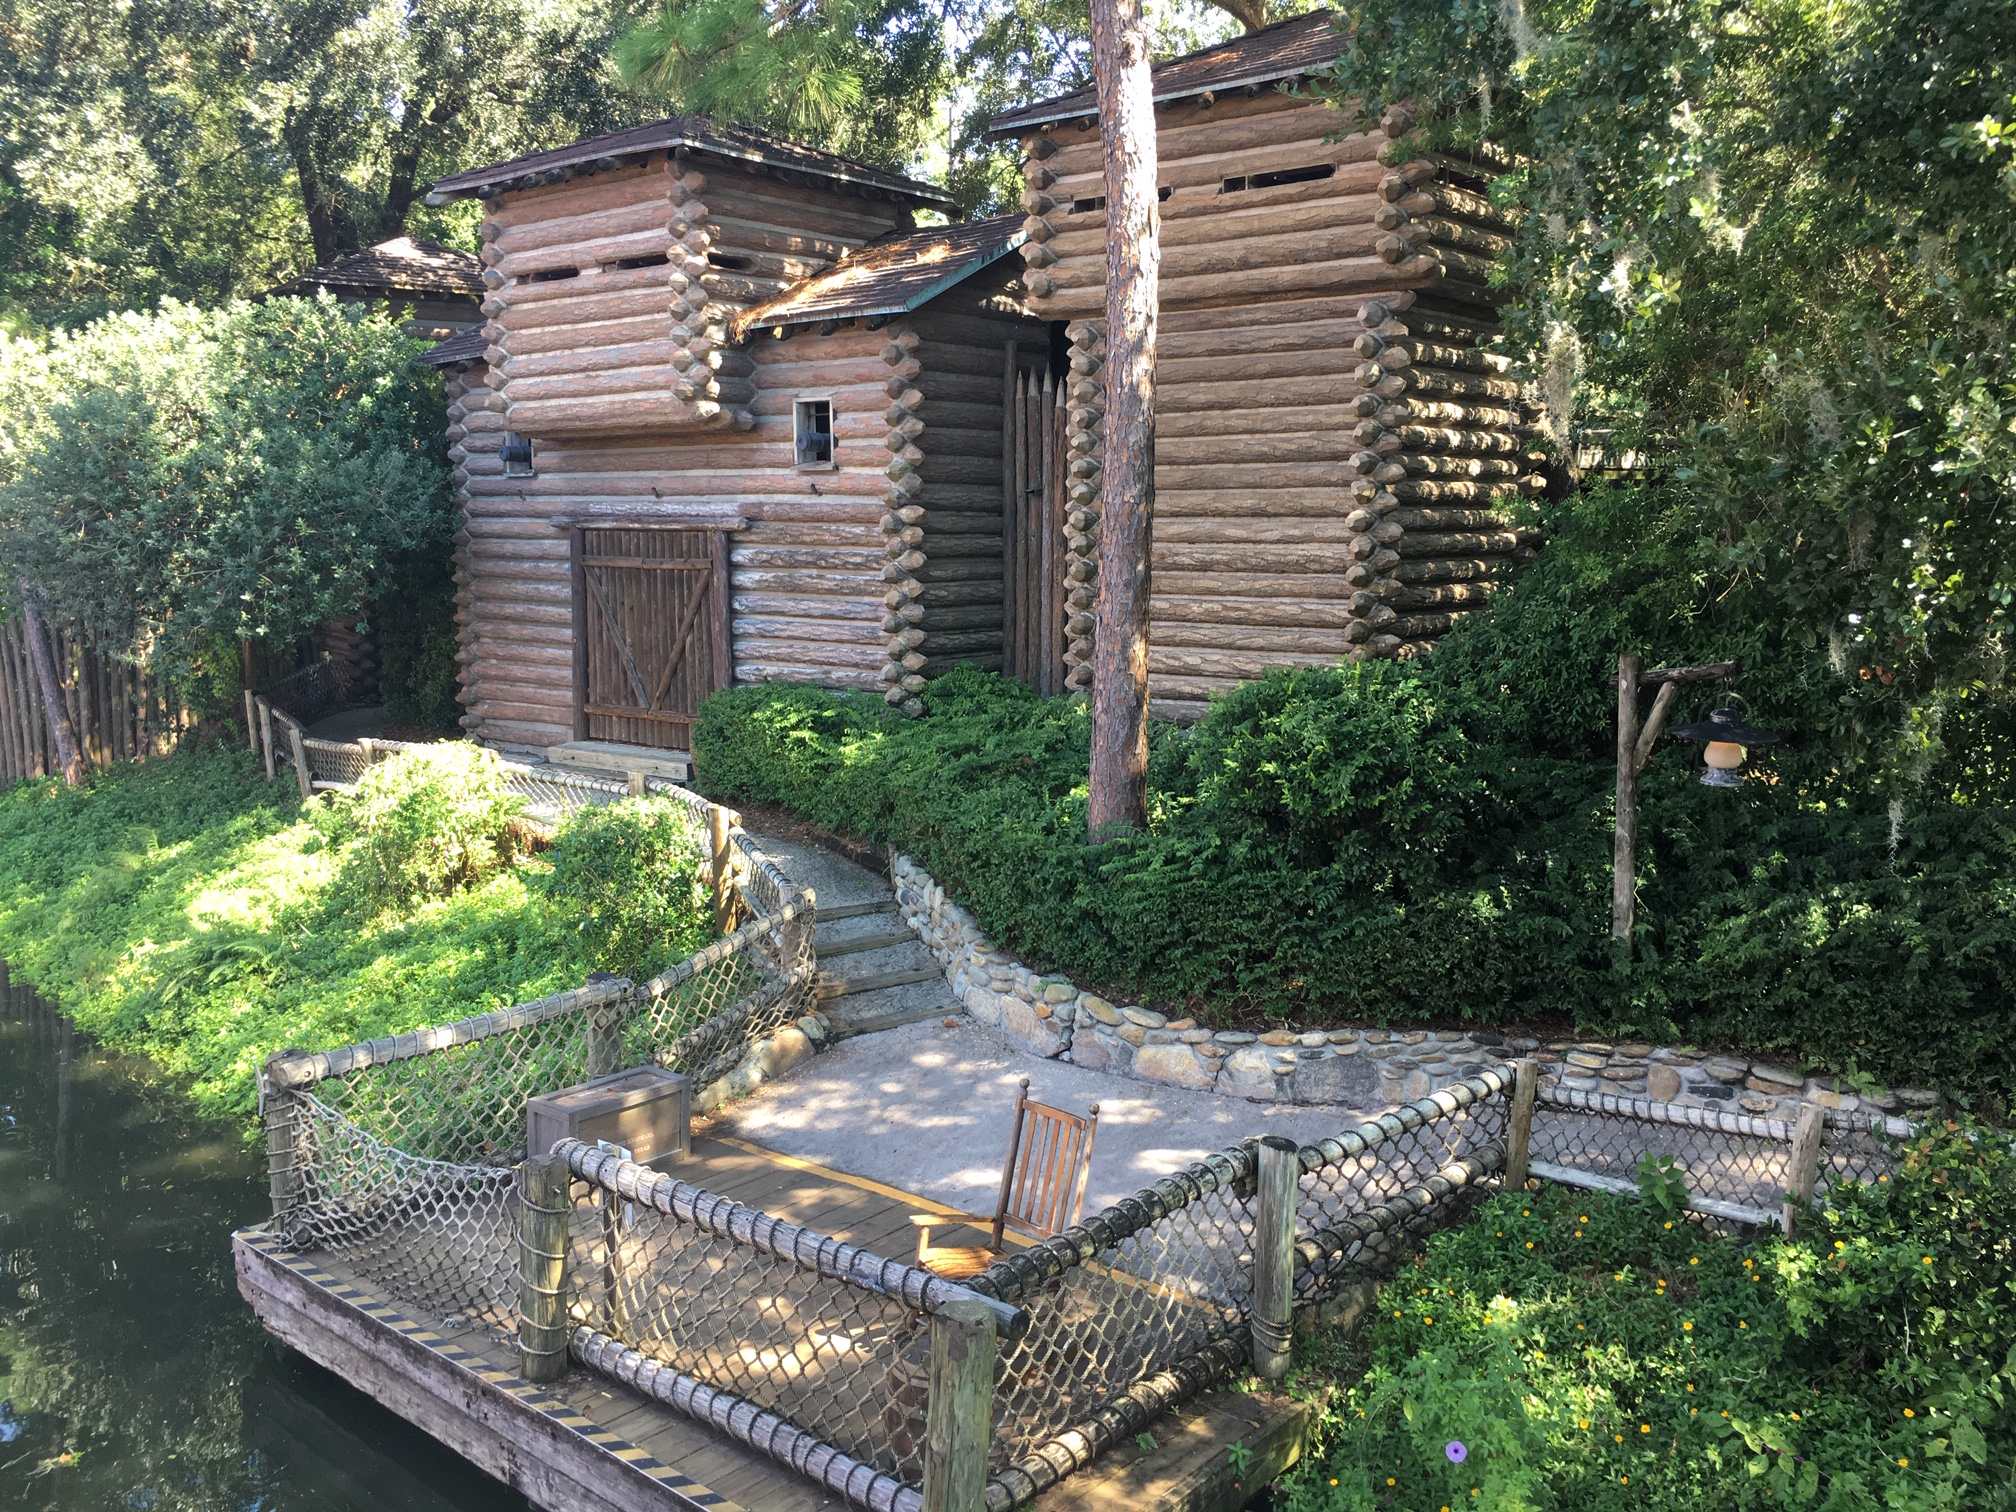 A great Disney World thrill ride alternative is exploring log structures and mine shafts on Tom Sawyer Island